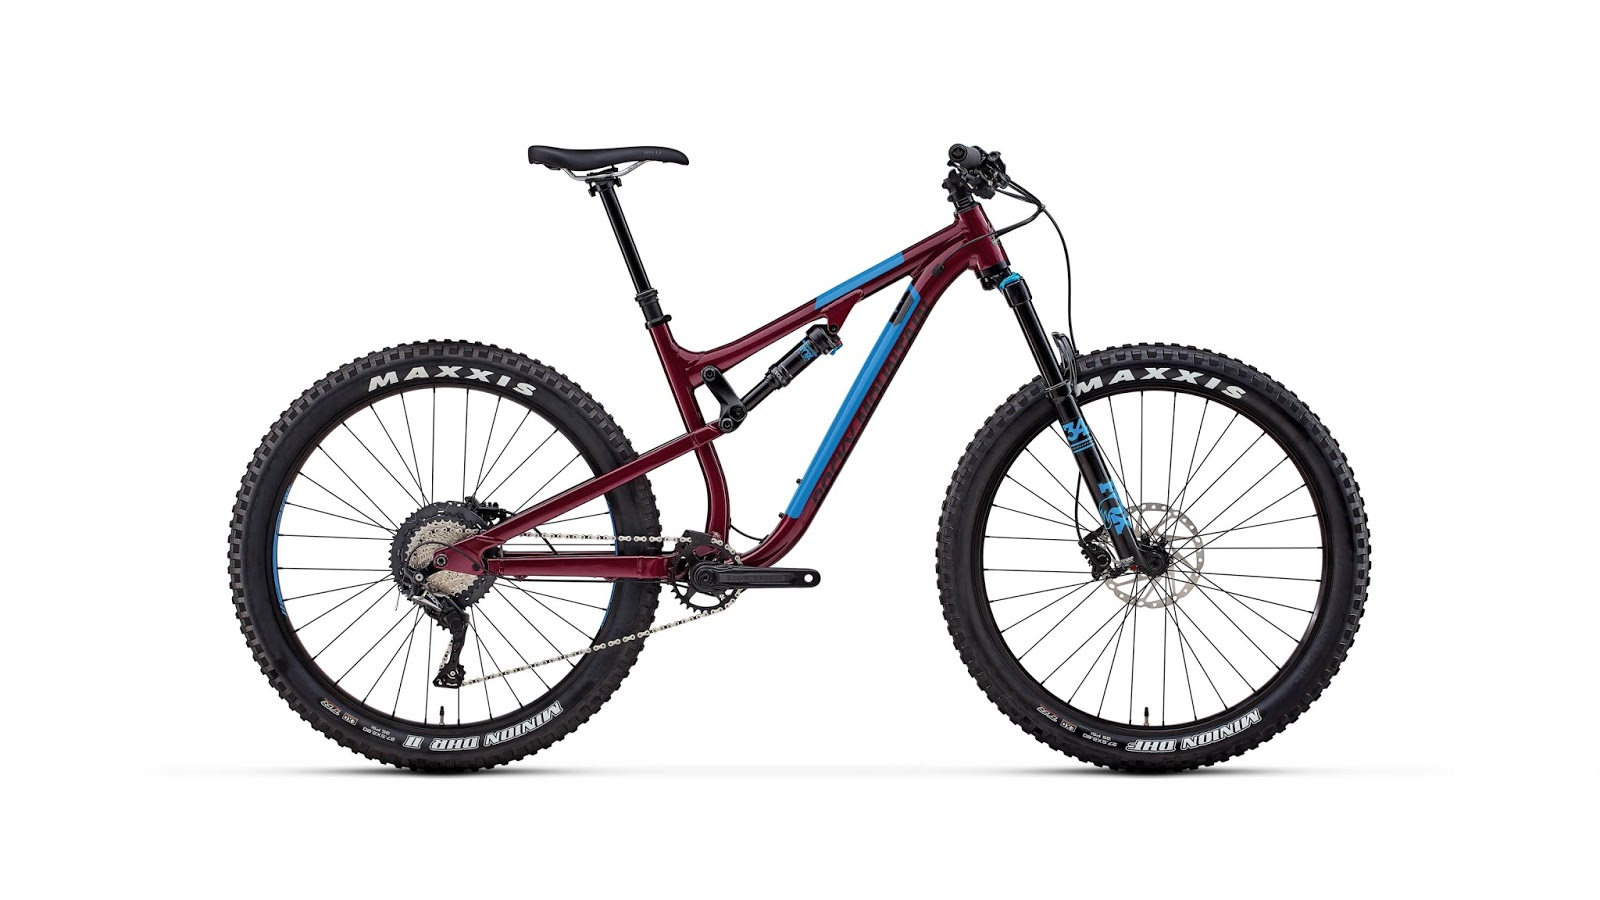 The New 2018 Pipeline MTB Bikes from Rocky Mountain